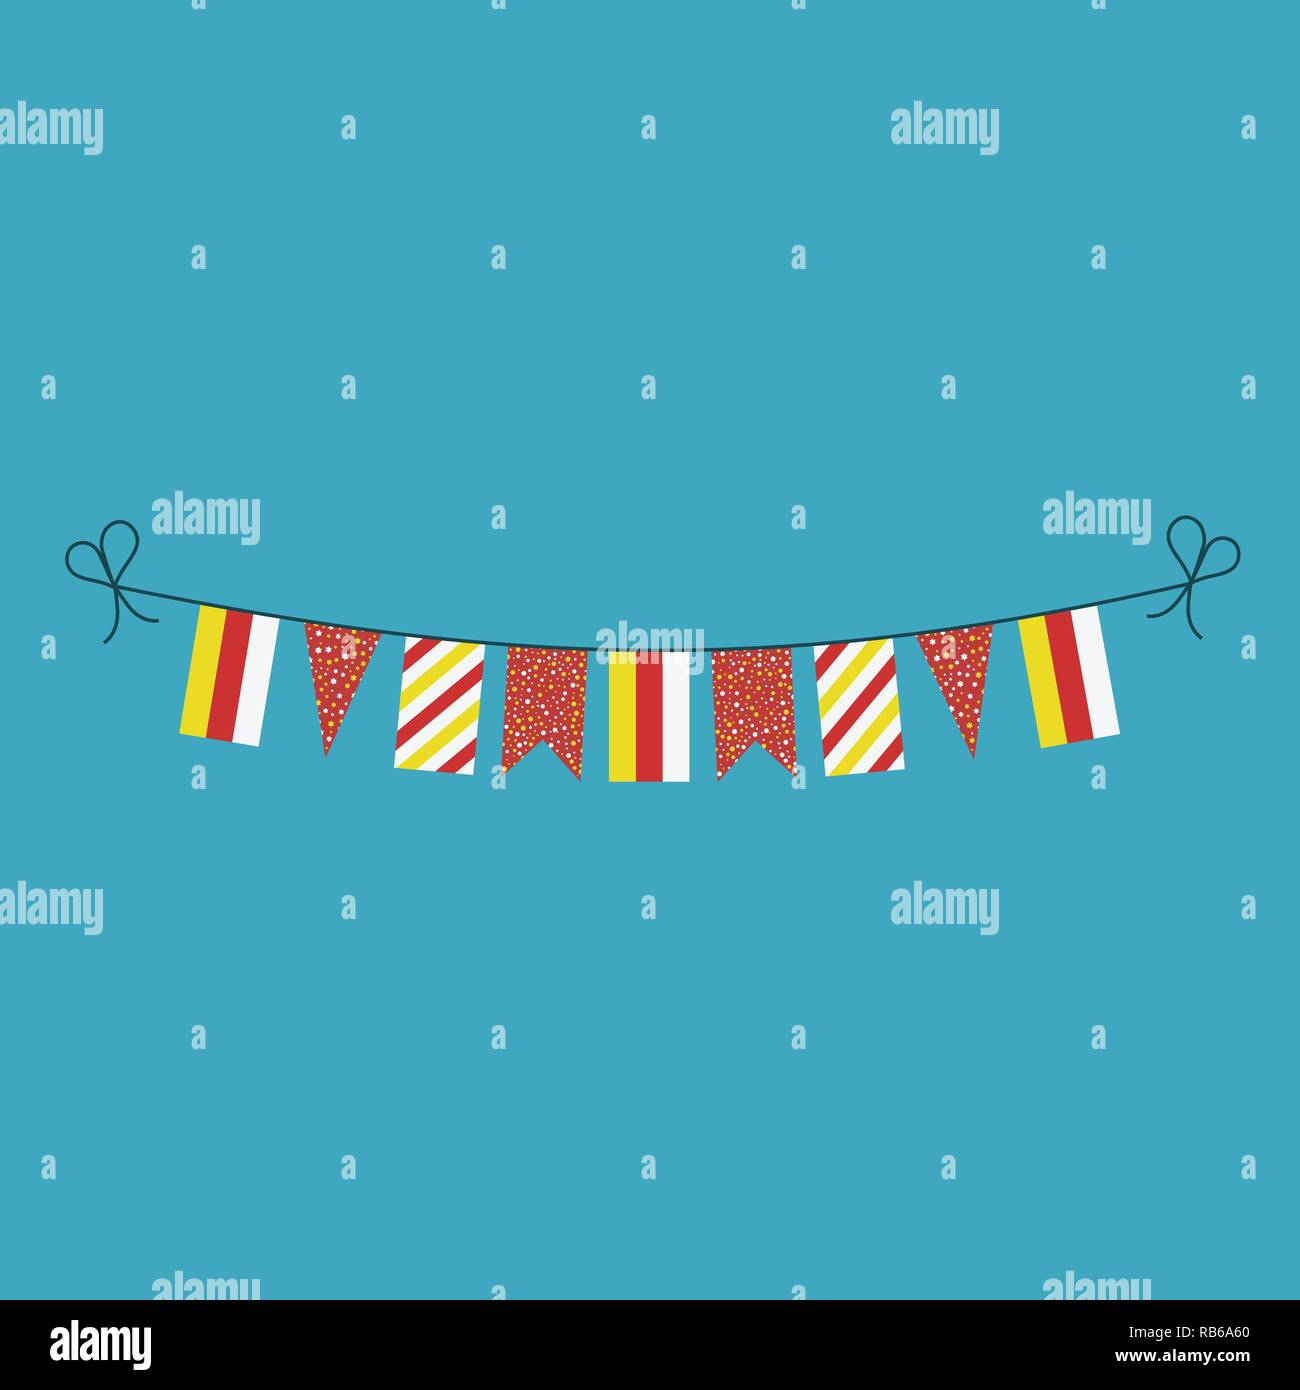 Decorations bunting flags for South Ossetia national day holiday in flat design. Independence day or National day holiday concept. - Stock Image